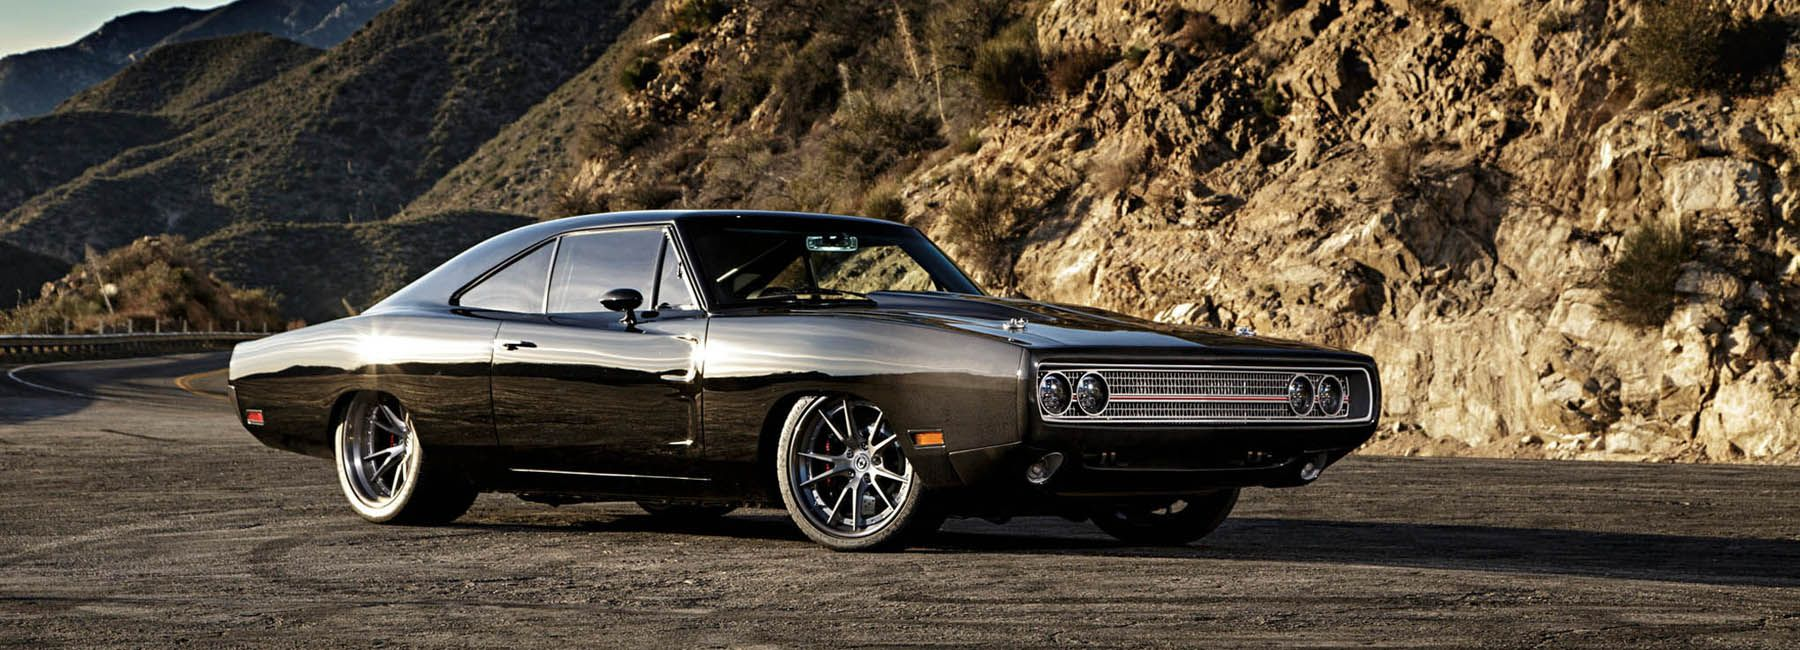 1970 Dodge Charger Tantrum Custom Muscle Car By Speedkore